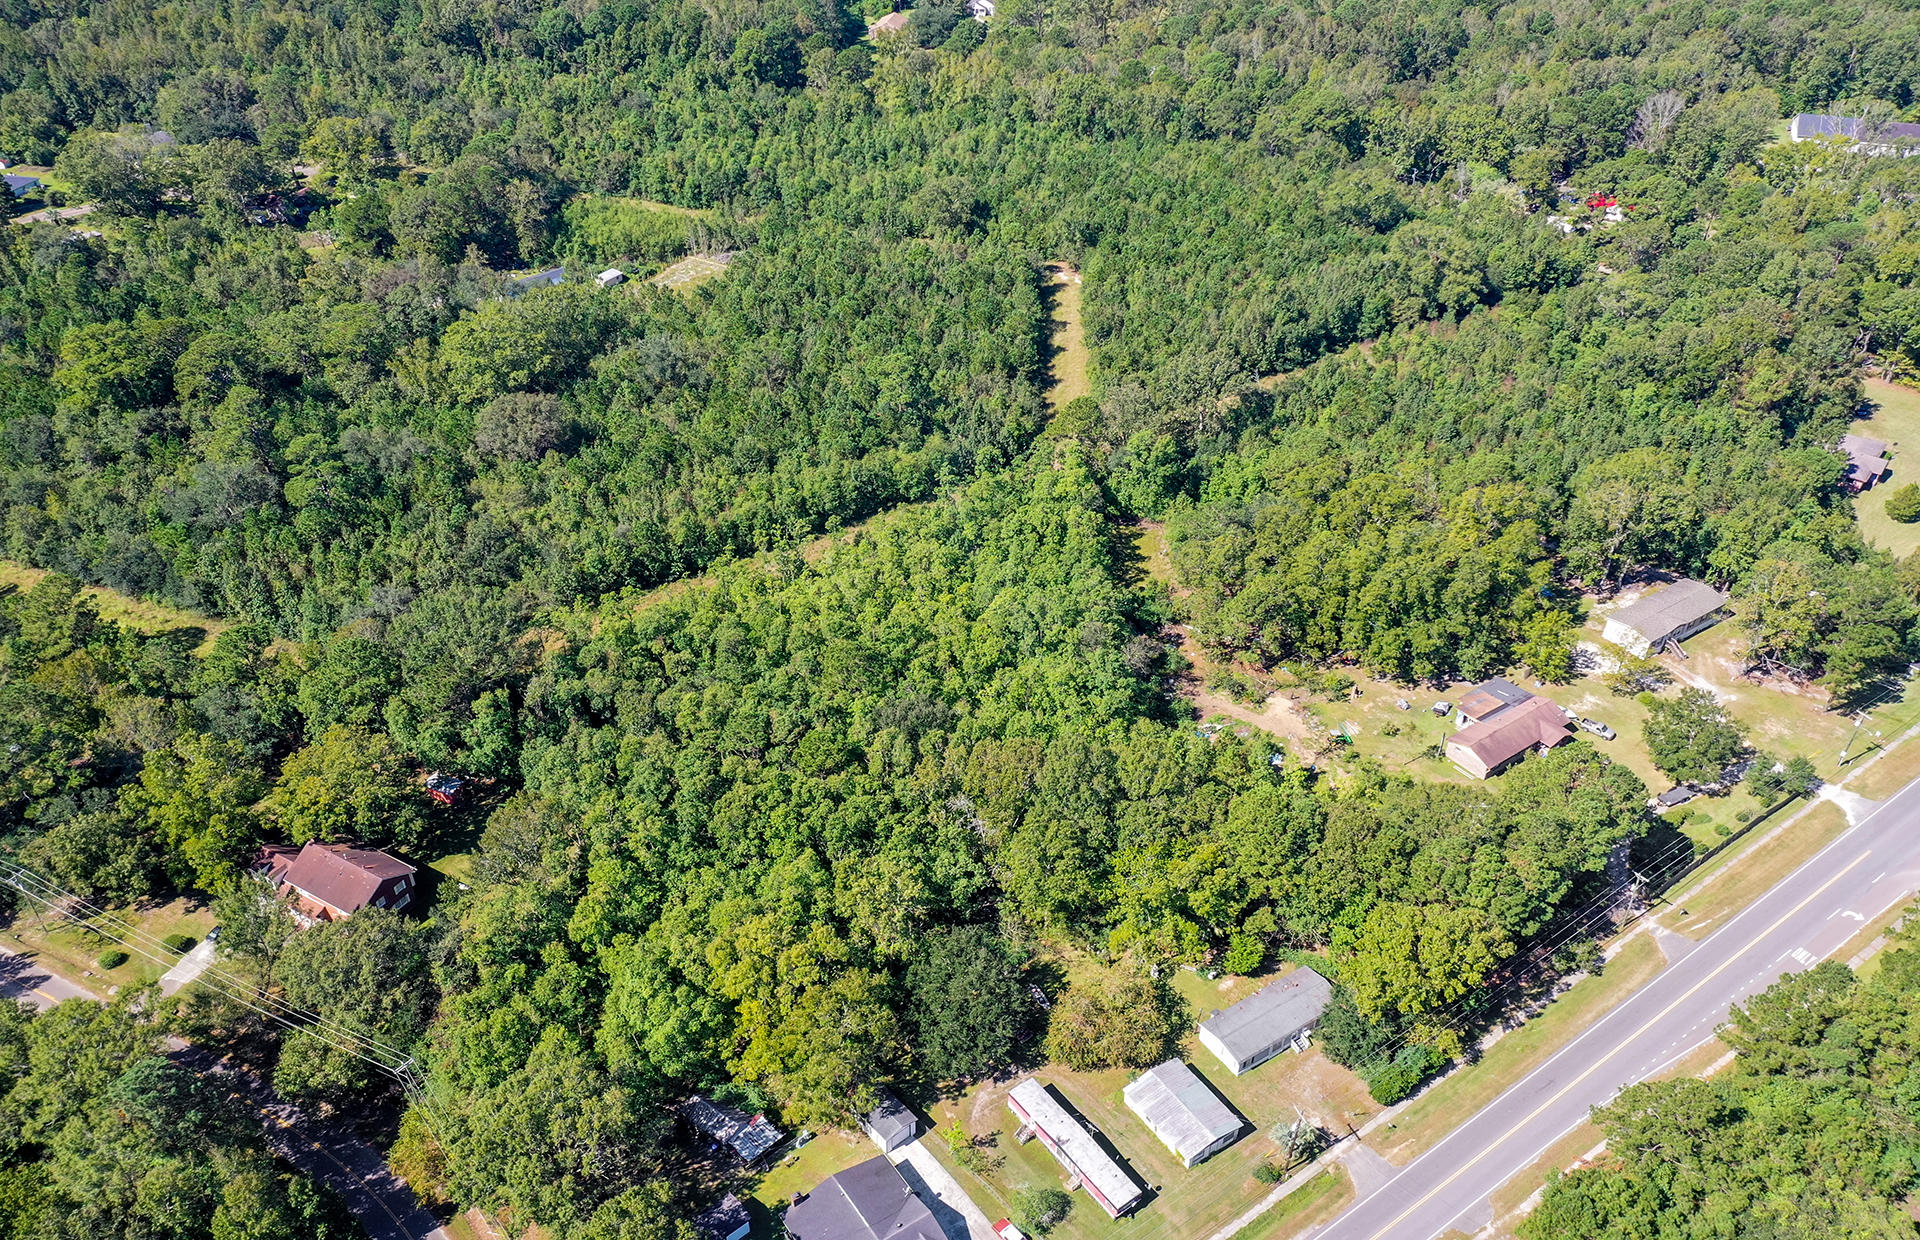 Tugman Lane Mount Pleasant, SC 29466